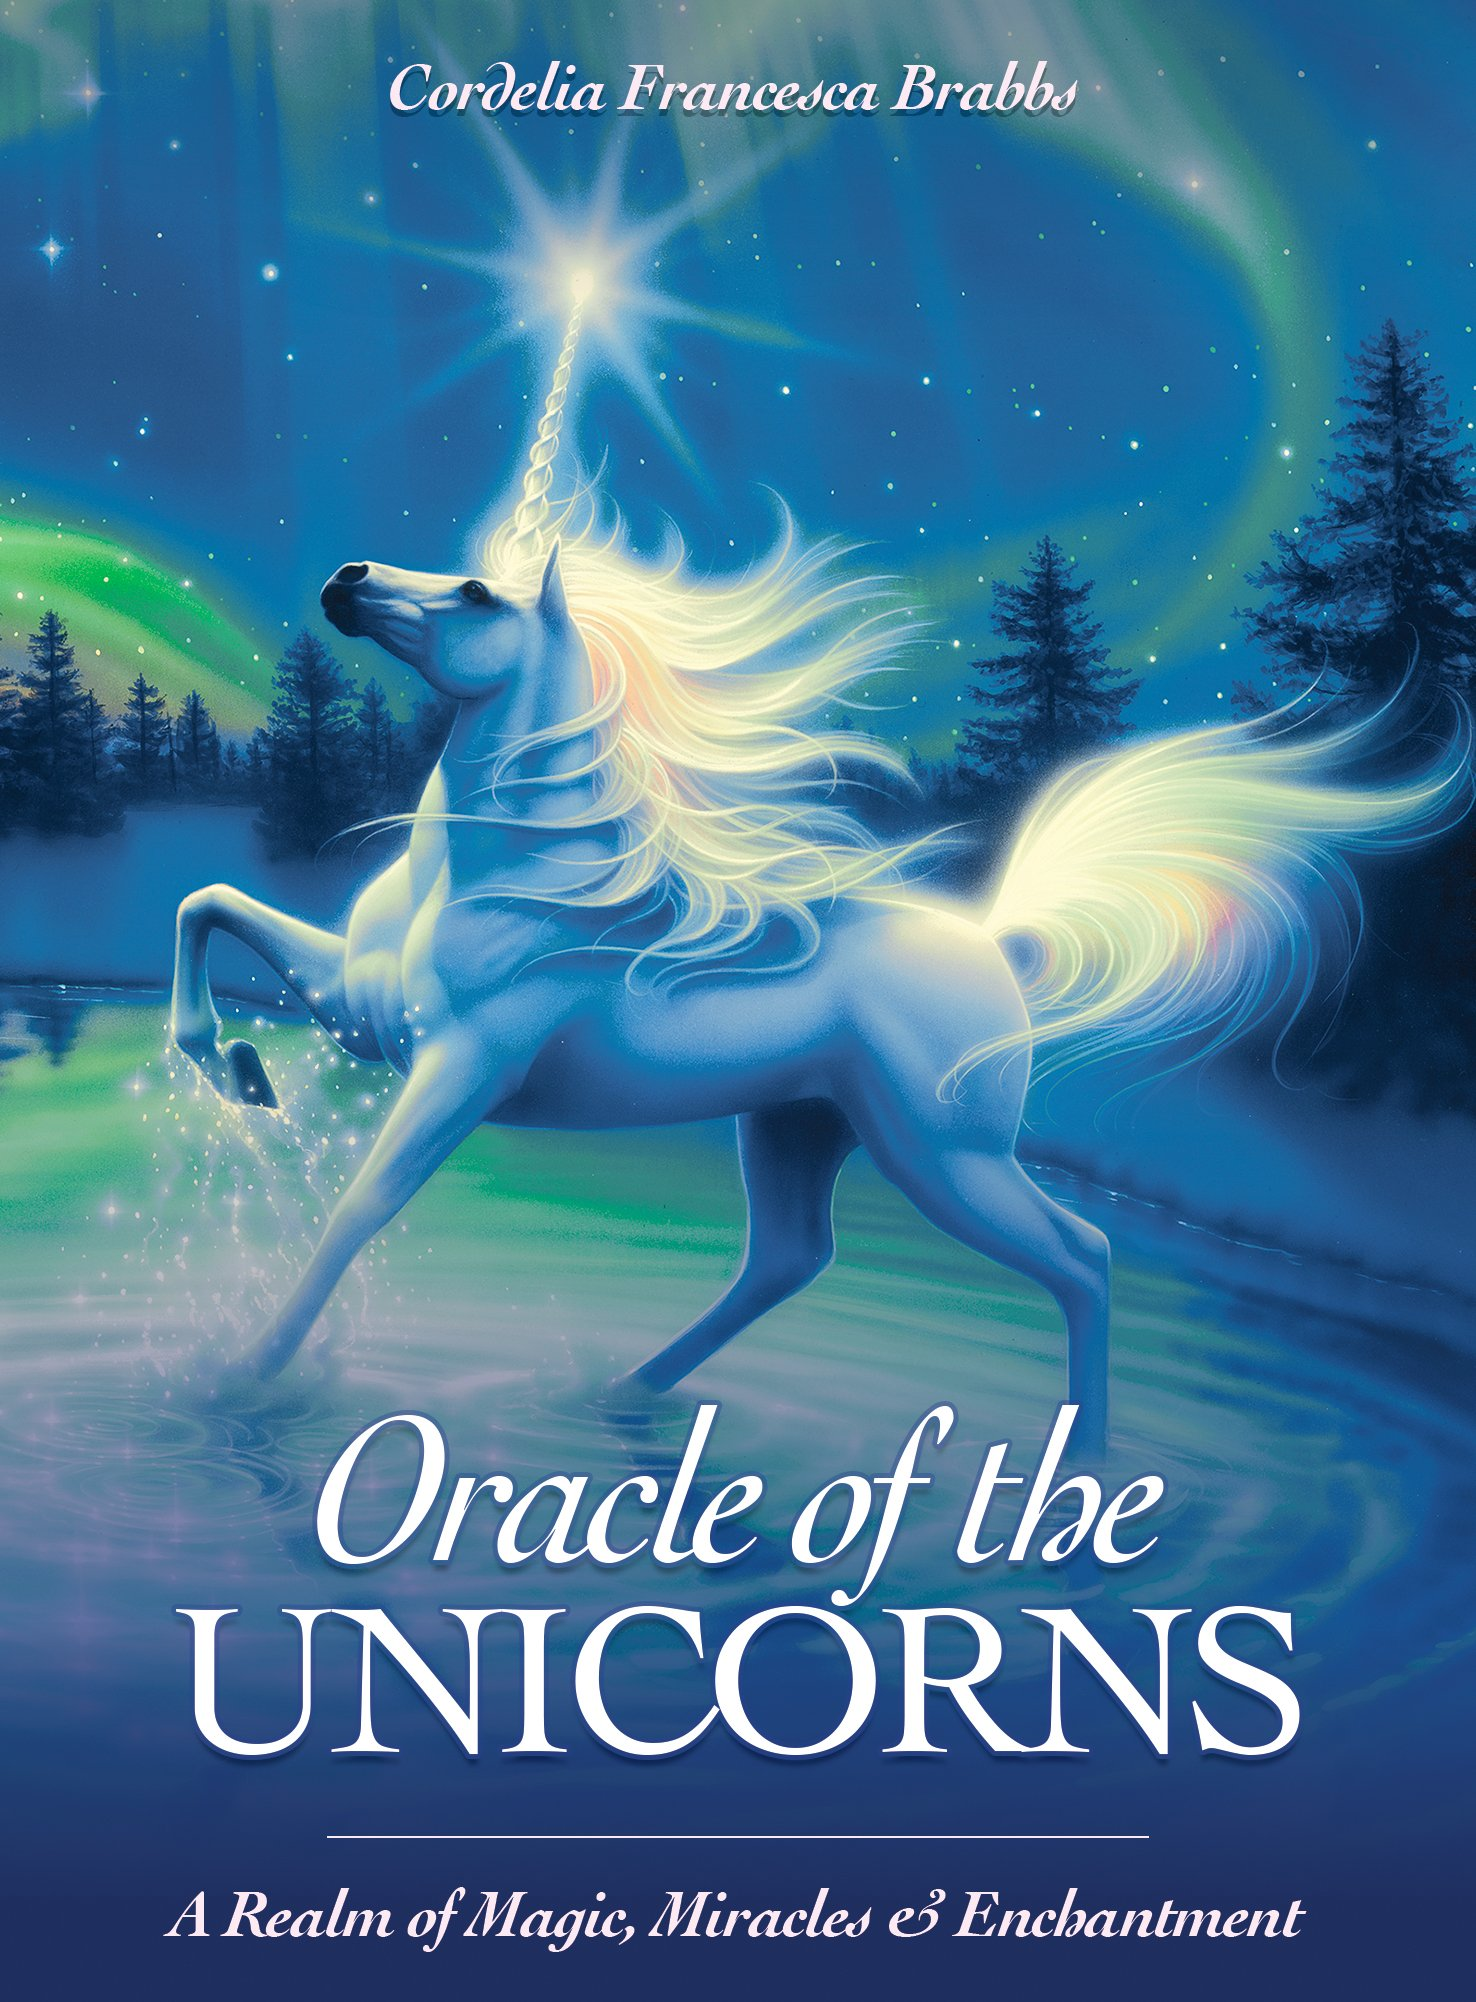 Oracle of the Unicorns: A Realm of Magic, Miracles & Enchantment pdf